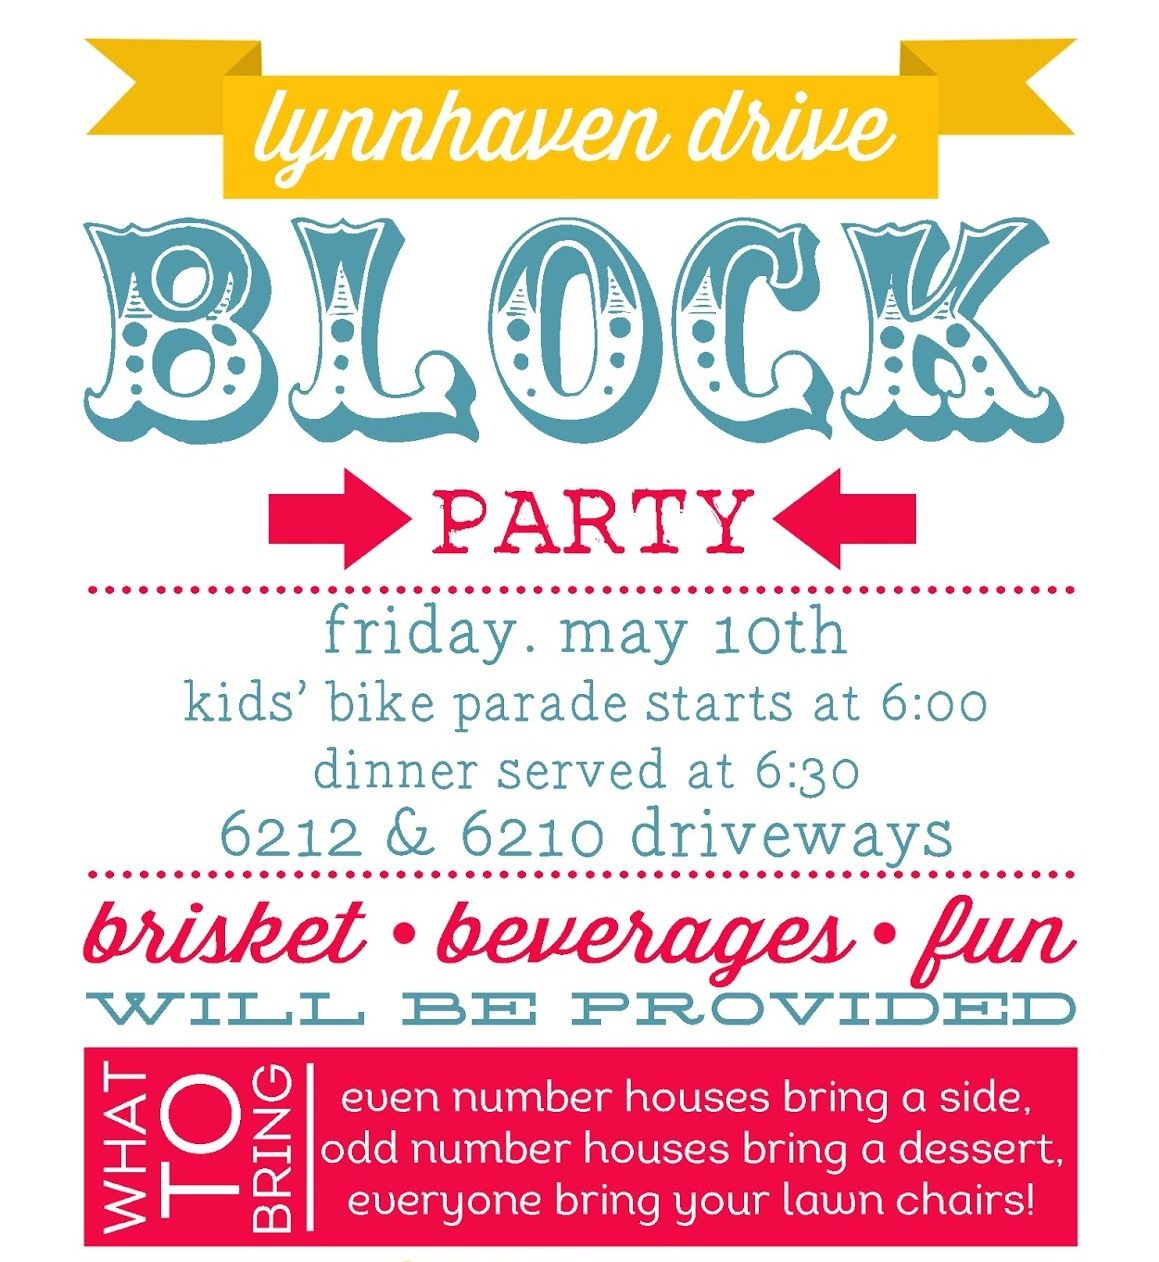 block party invites - Dorit.mercatodos.co